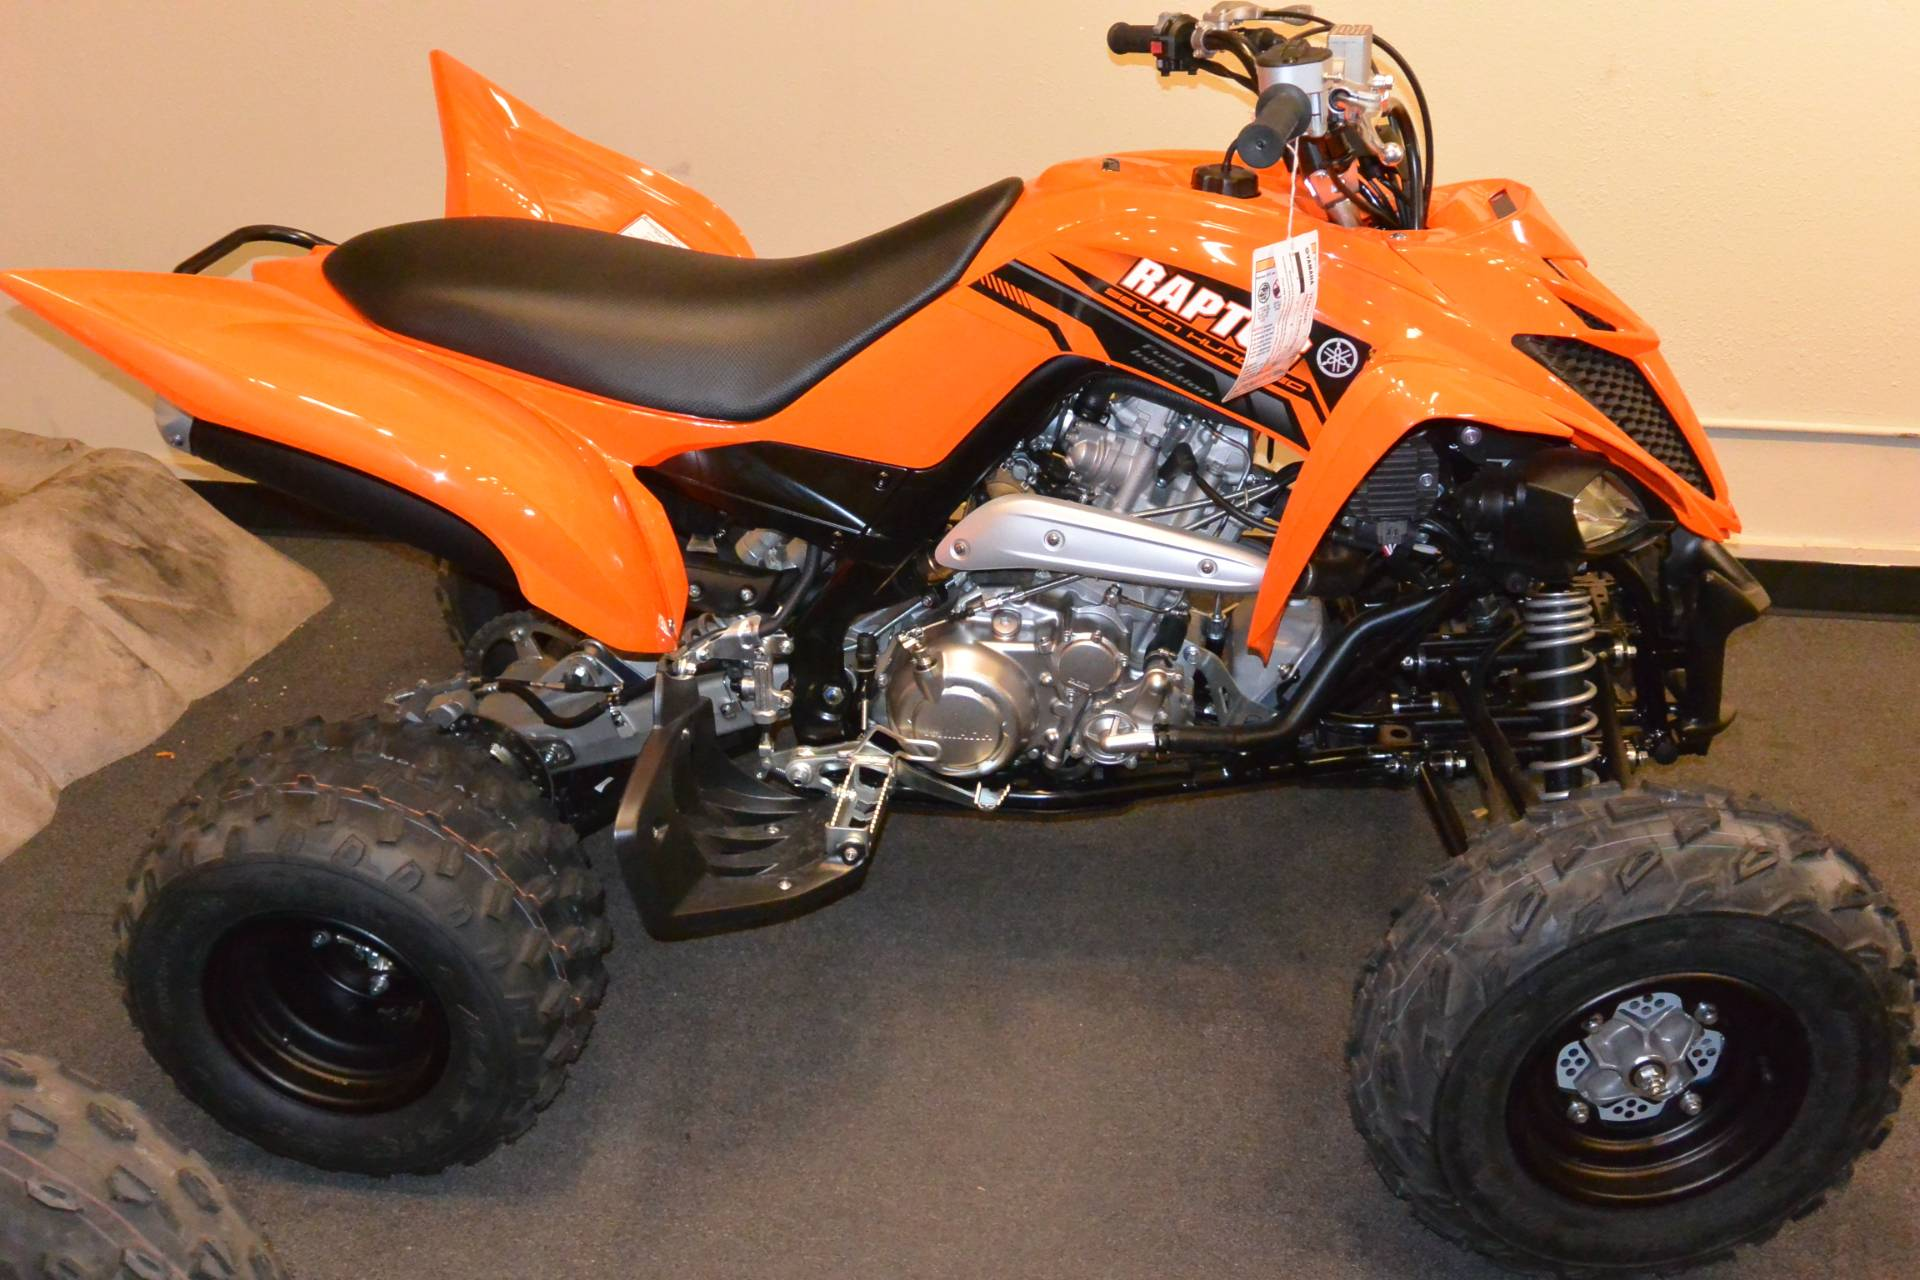 2017 Yamaha Raptor 700 in Denver, Colorado